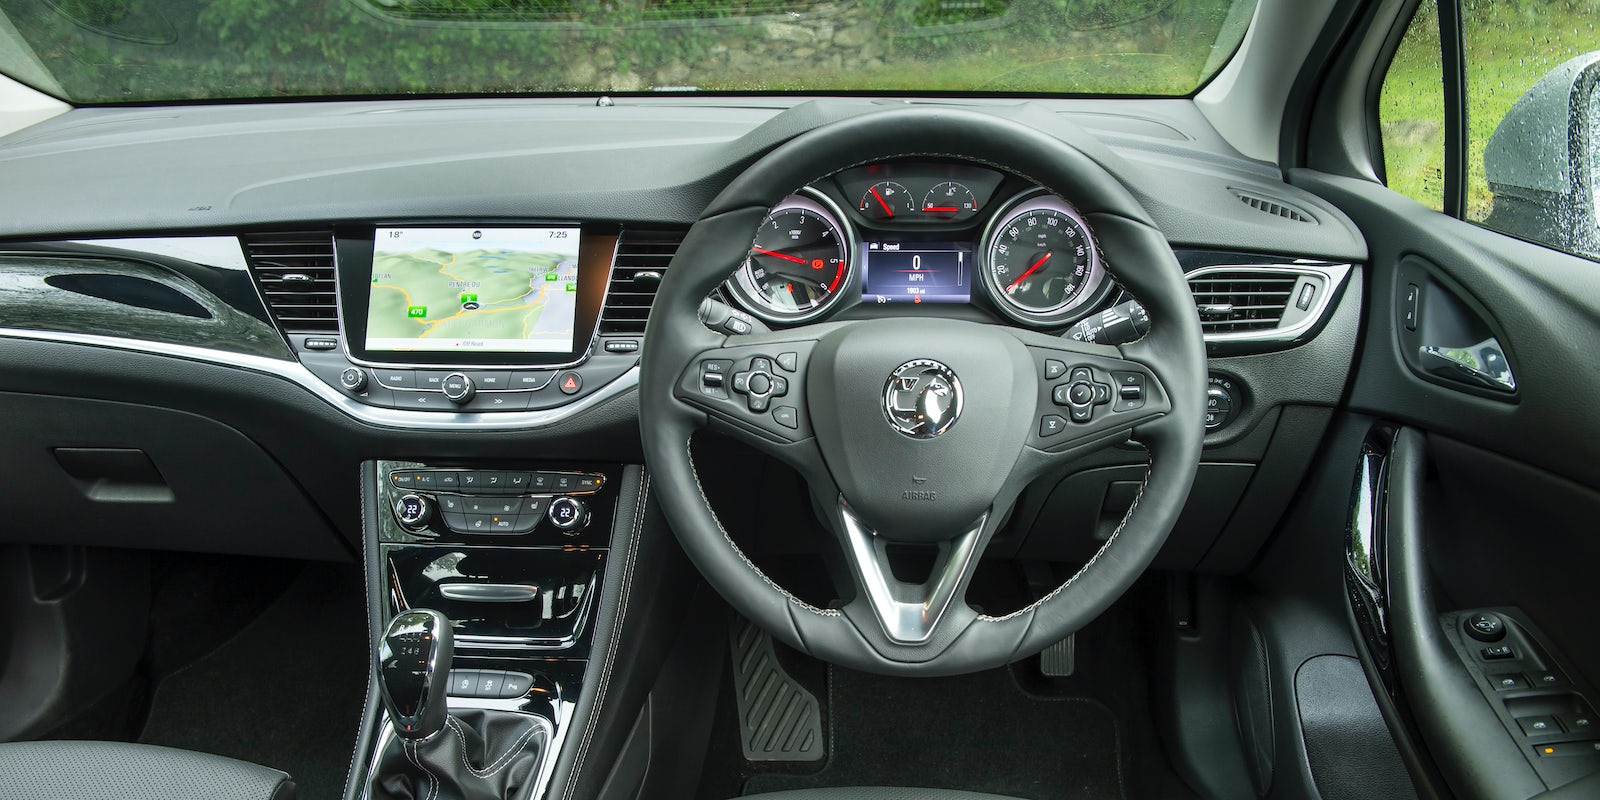 Vauxhall astra gtc 1 6t sri auto express - The Dash Is Well Designed And Made Of Decent Quality Materials